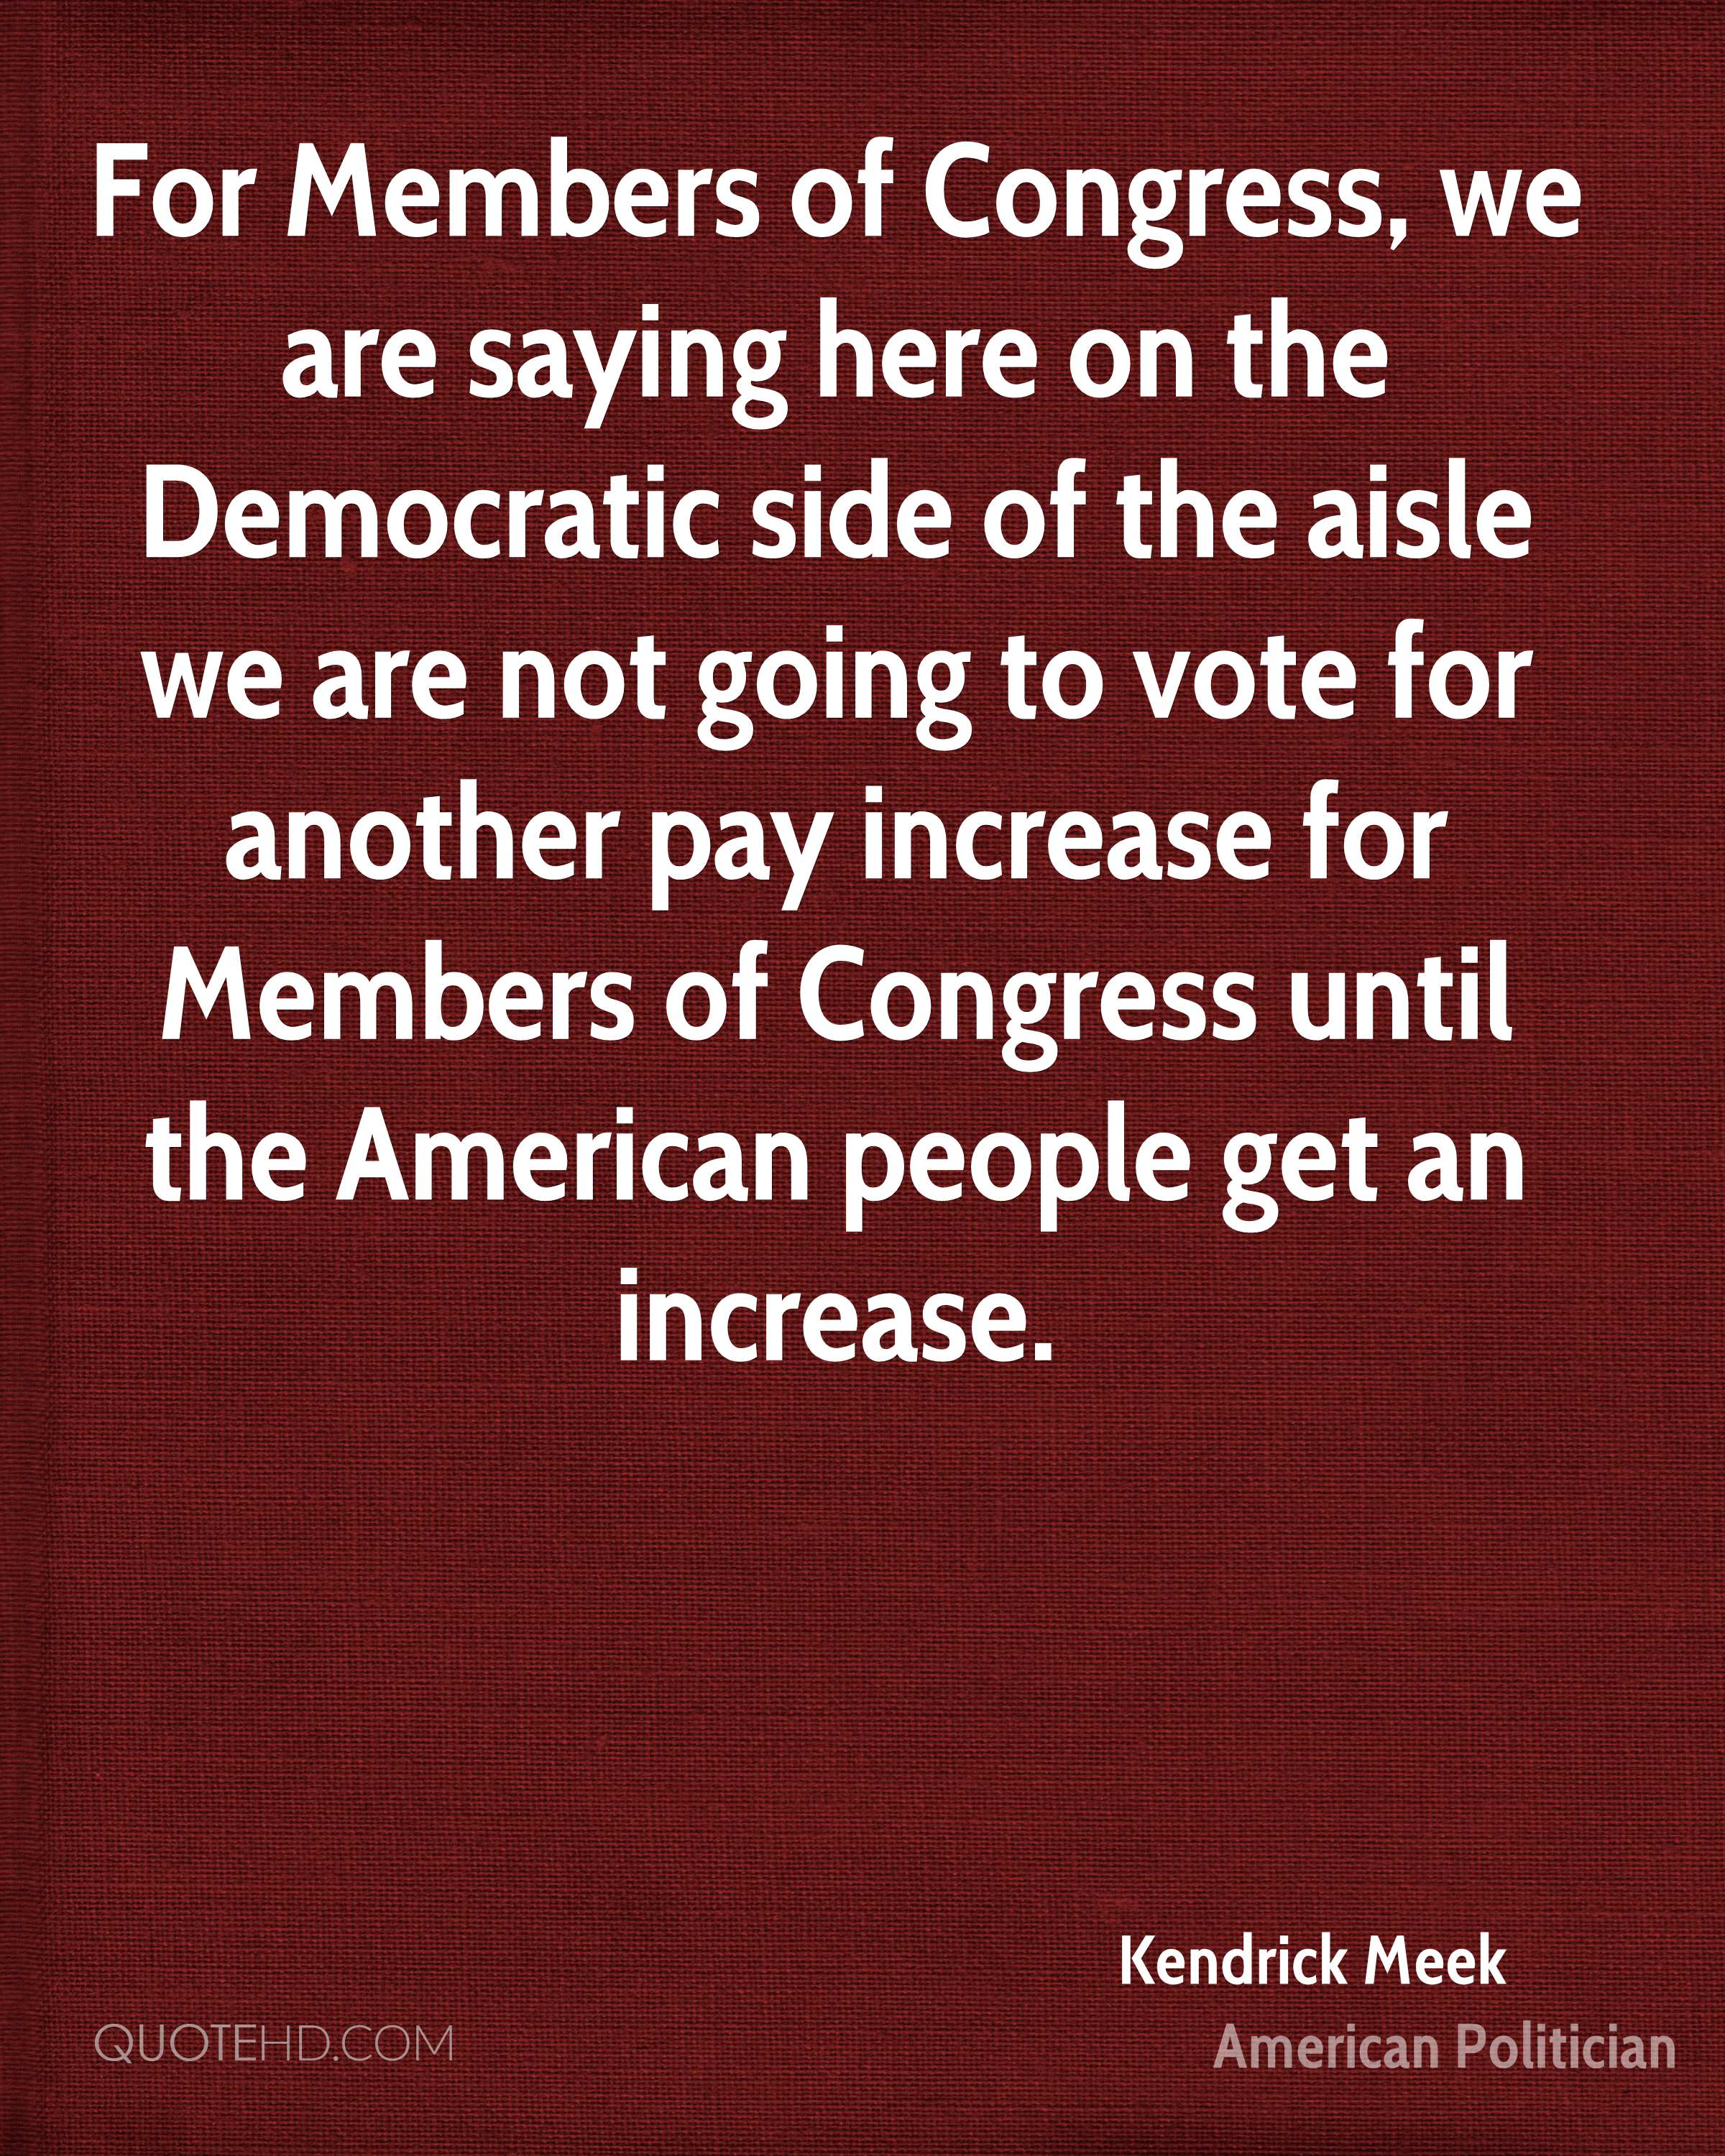 For Members of Congress, we are saying here on the Democratic side of the aisle we are not going to vote for another pay increase for Members of Congress until the American people get an increase.